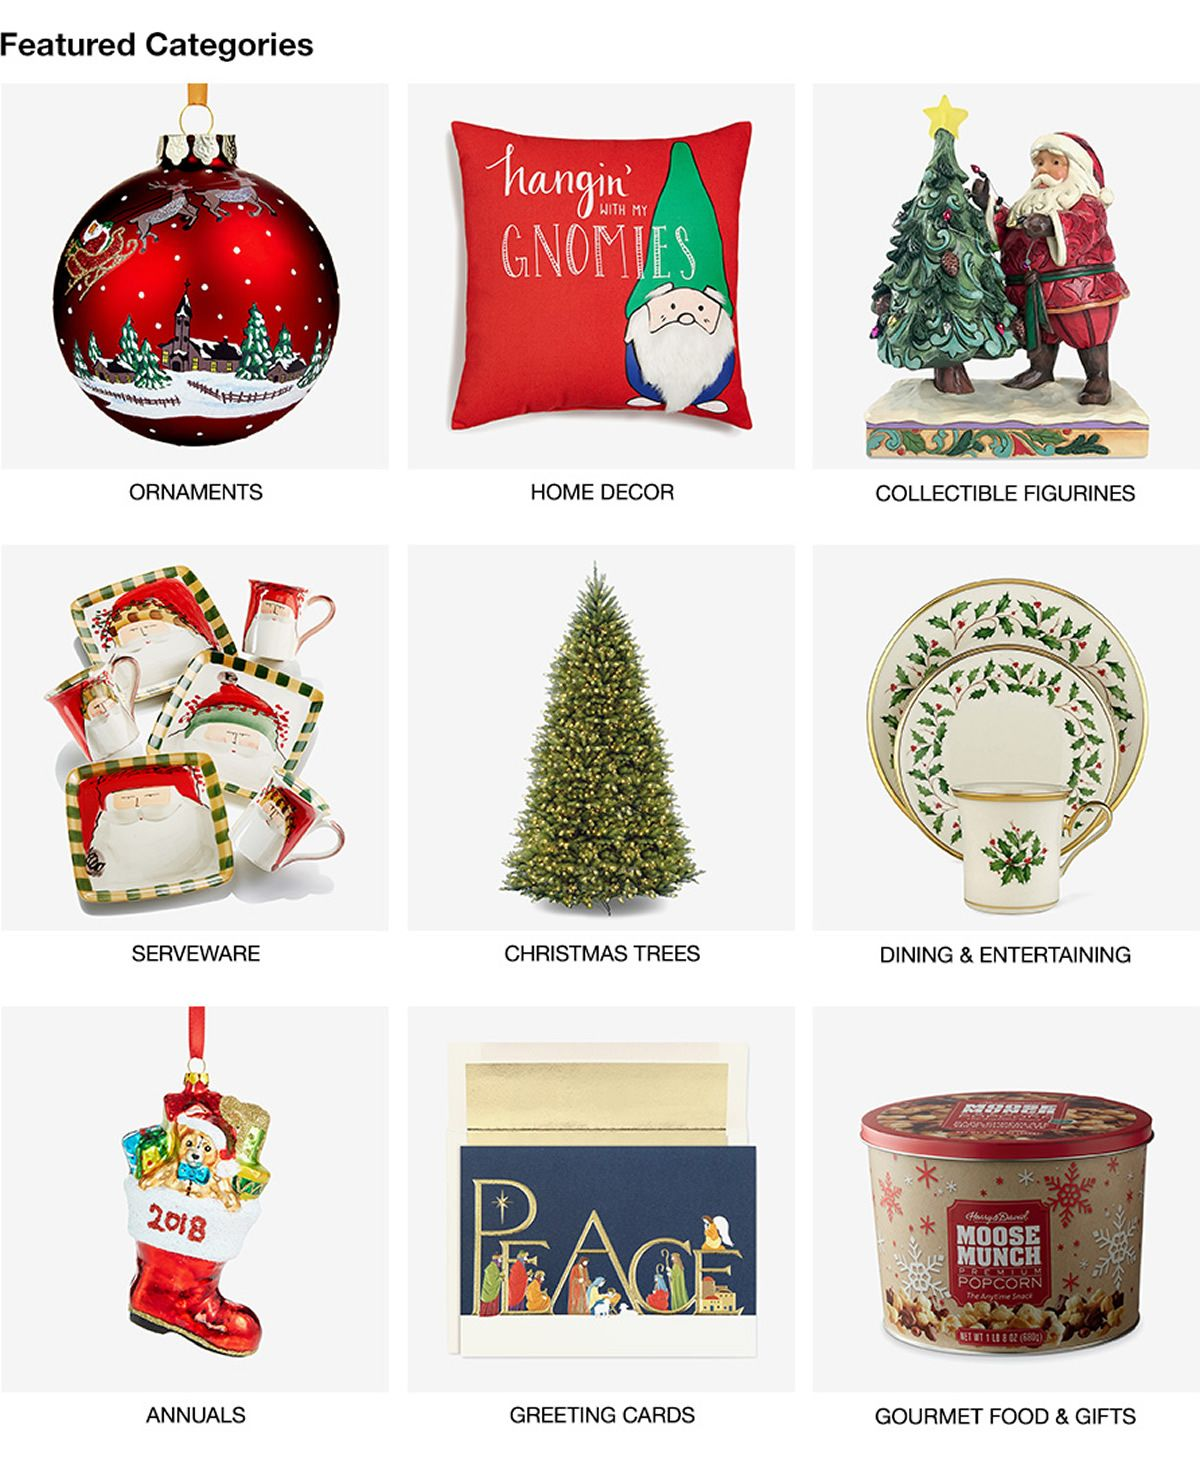 Featured Categories Ornaments Home Decor Collectible Figurines Serveware Christmas Trees